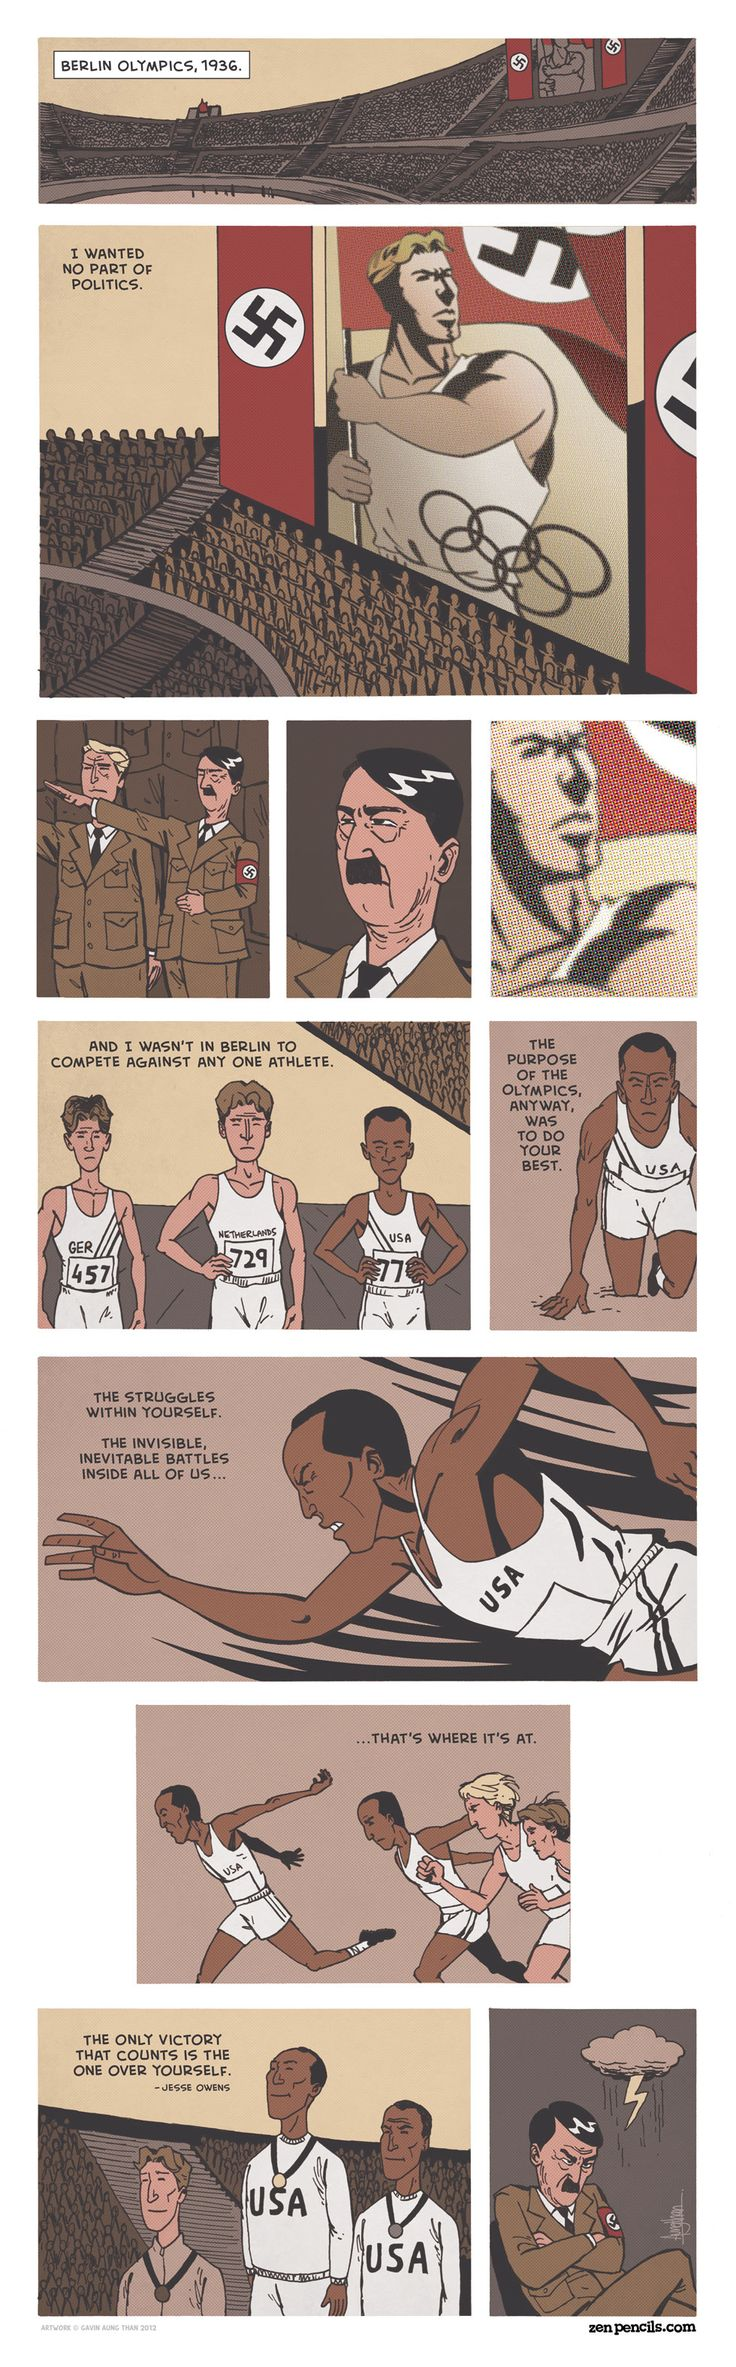 JESSE OWENS: The inevitable battle